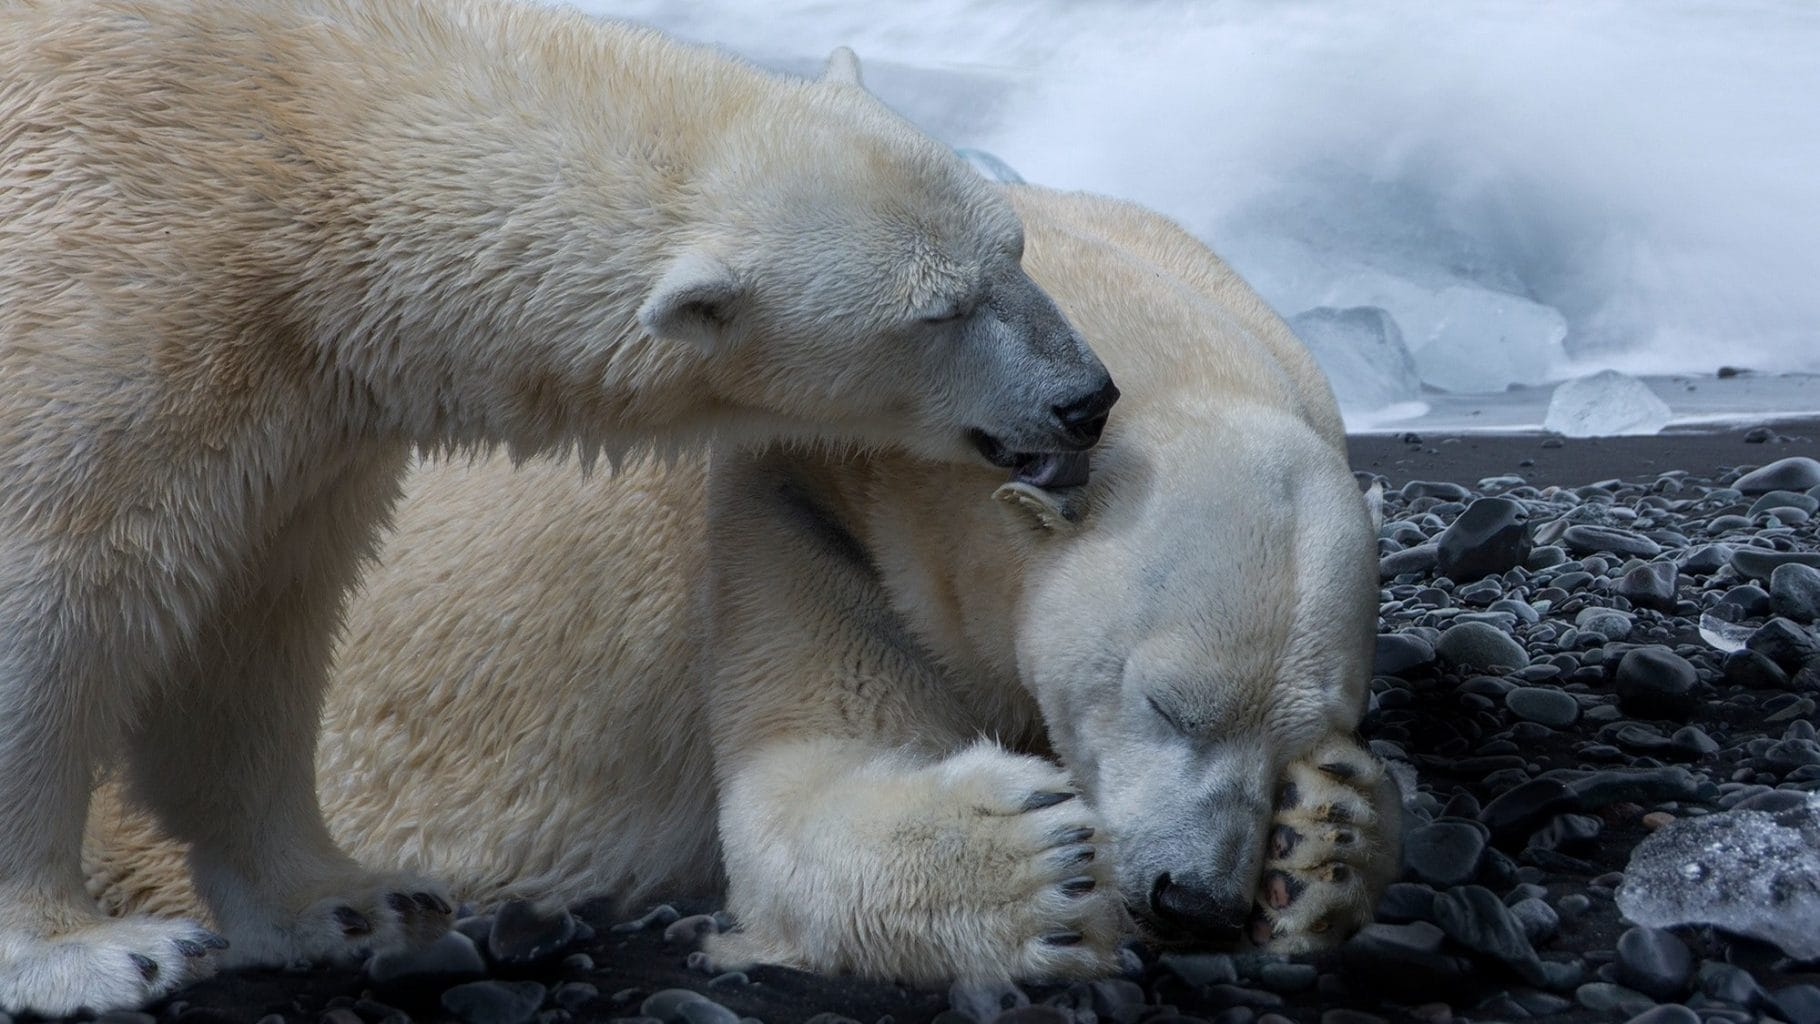 Image: Two polar bears, one sleeping and the other licking its ear